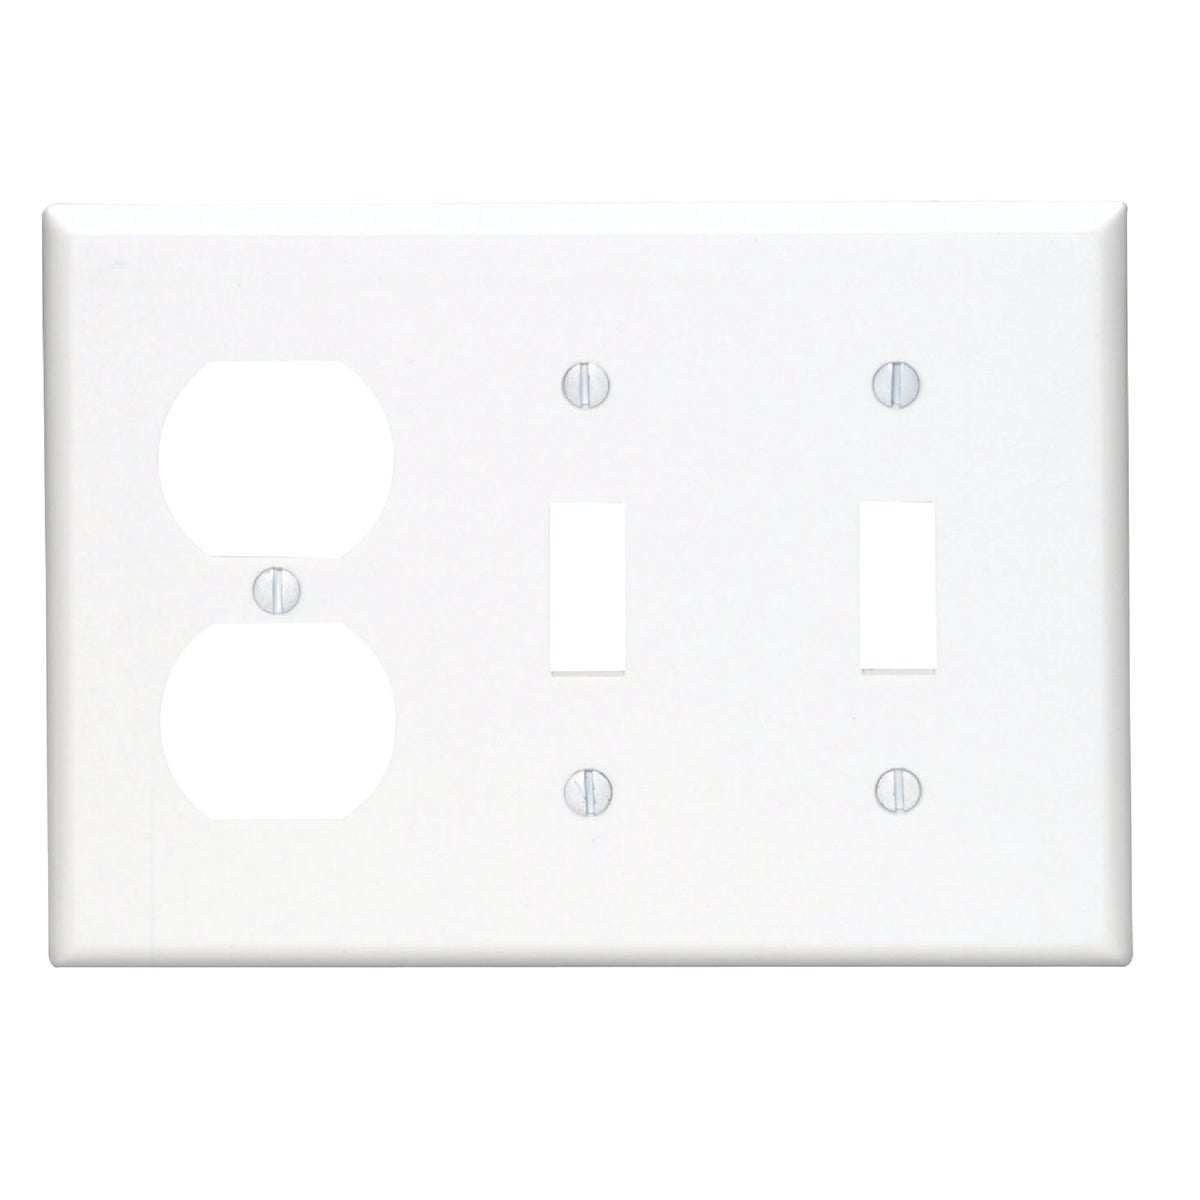 WHT 2TOGL/OUT WALL PLATE - 88021 by Leviton Mfg Co